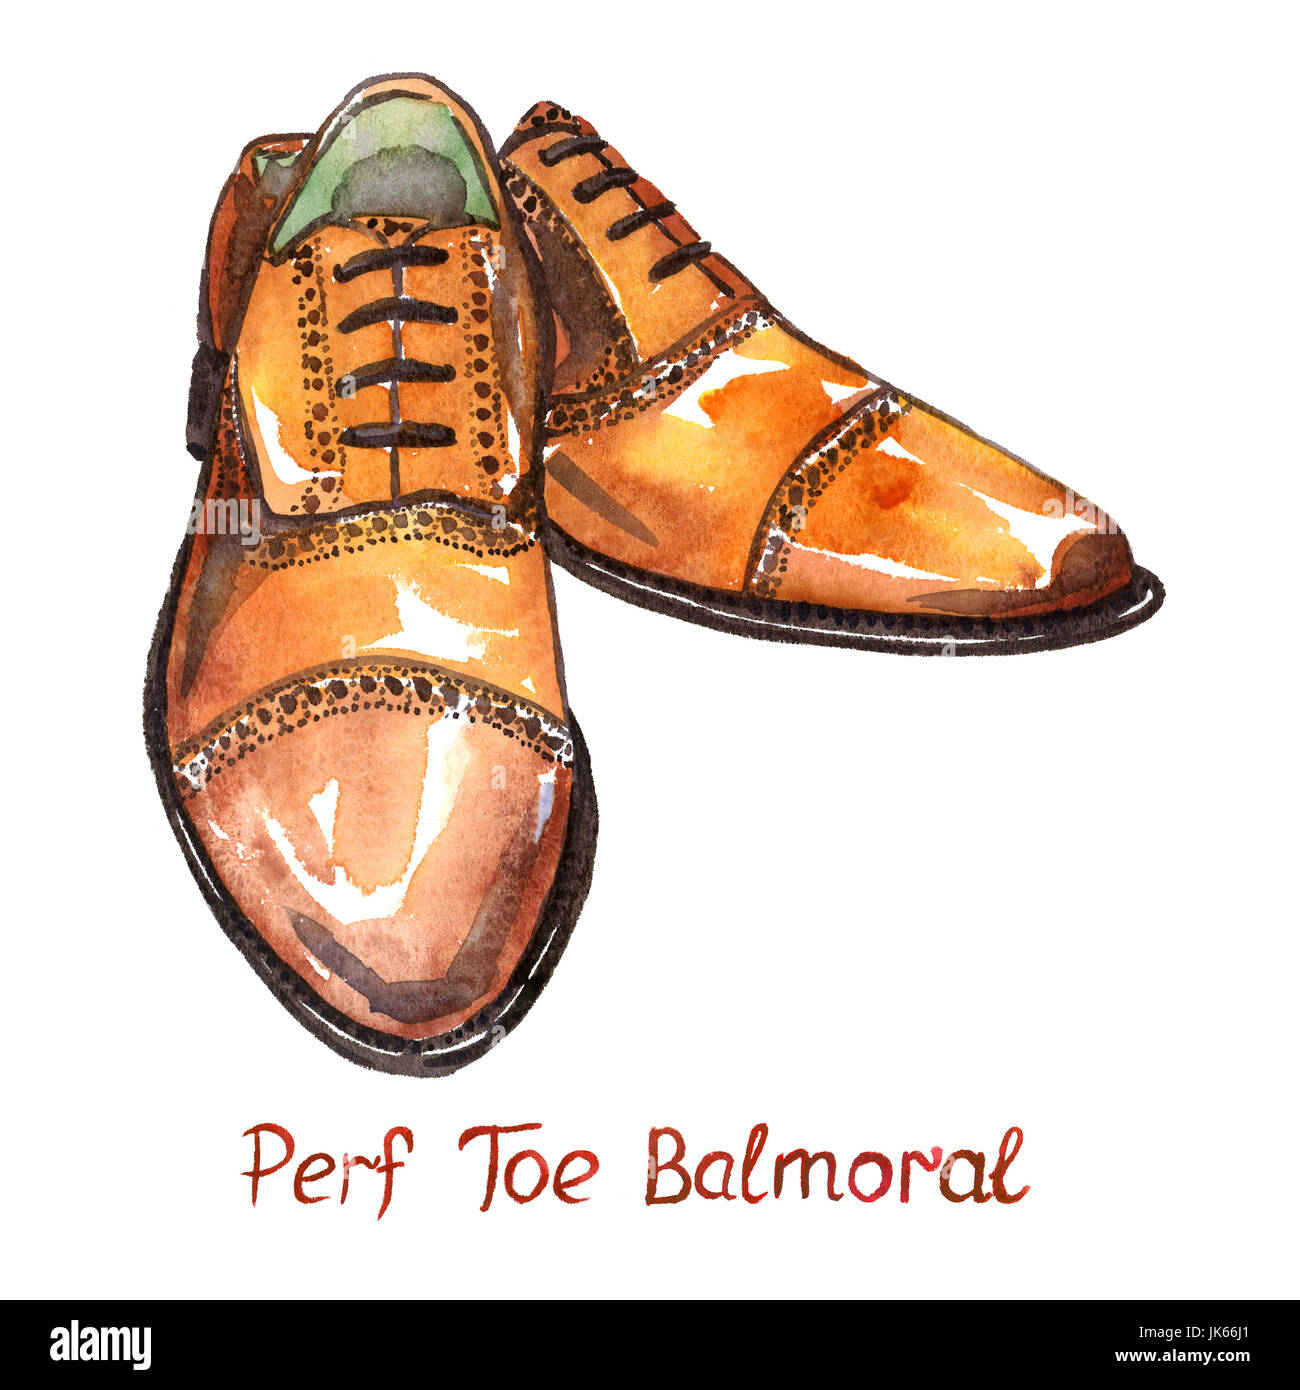 Brown leather perf toe balmoral shoes, isolated with inscription, hand painted watercolor illustration - Stock Image